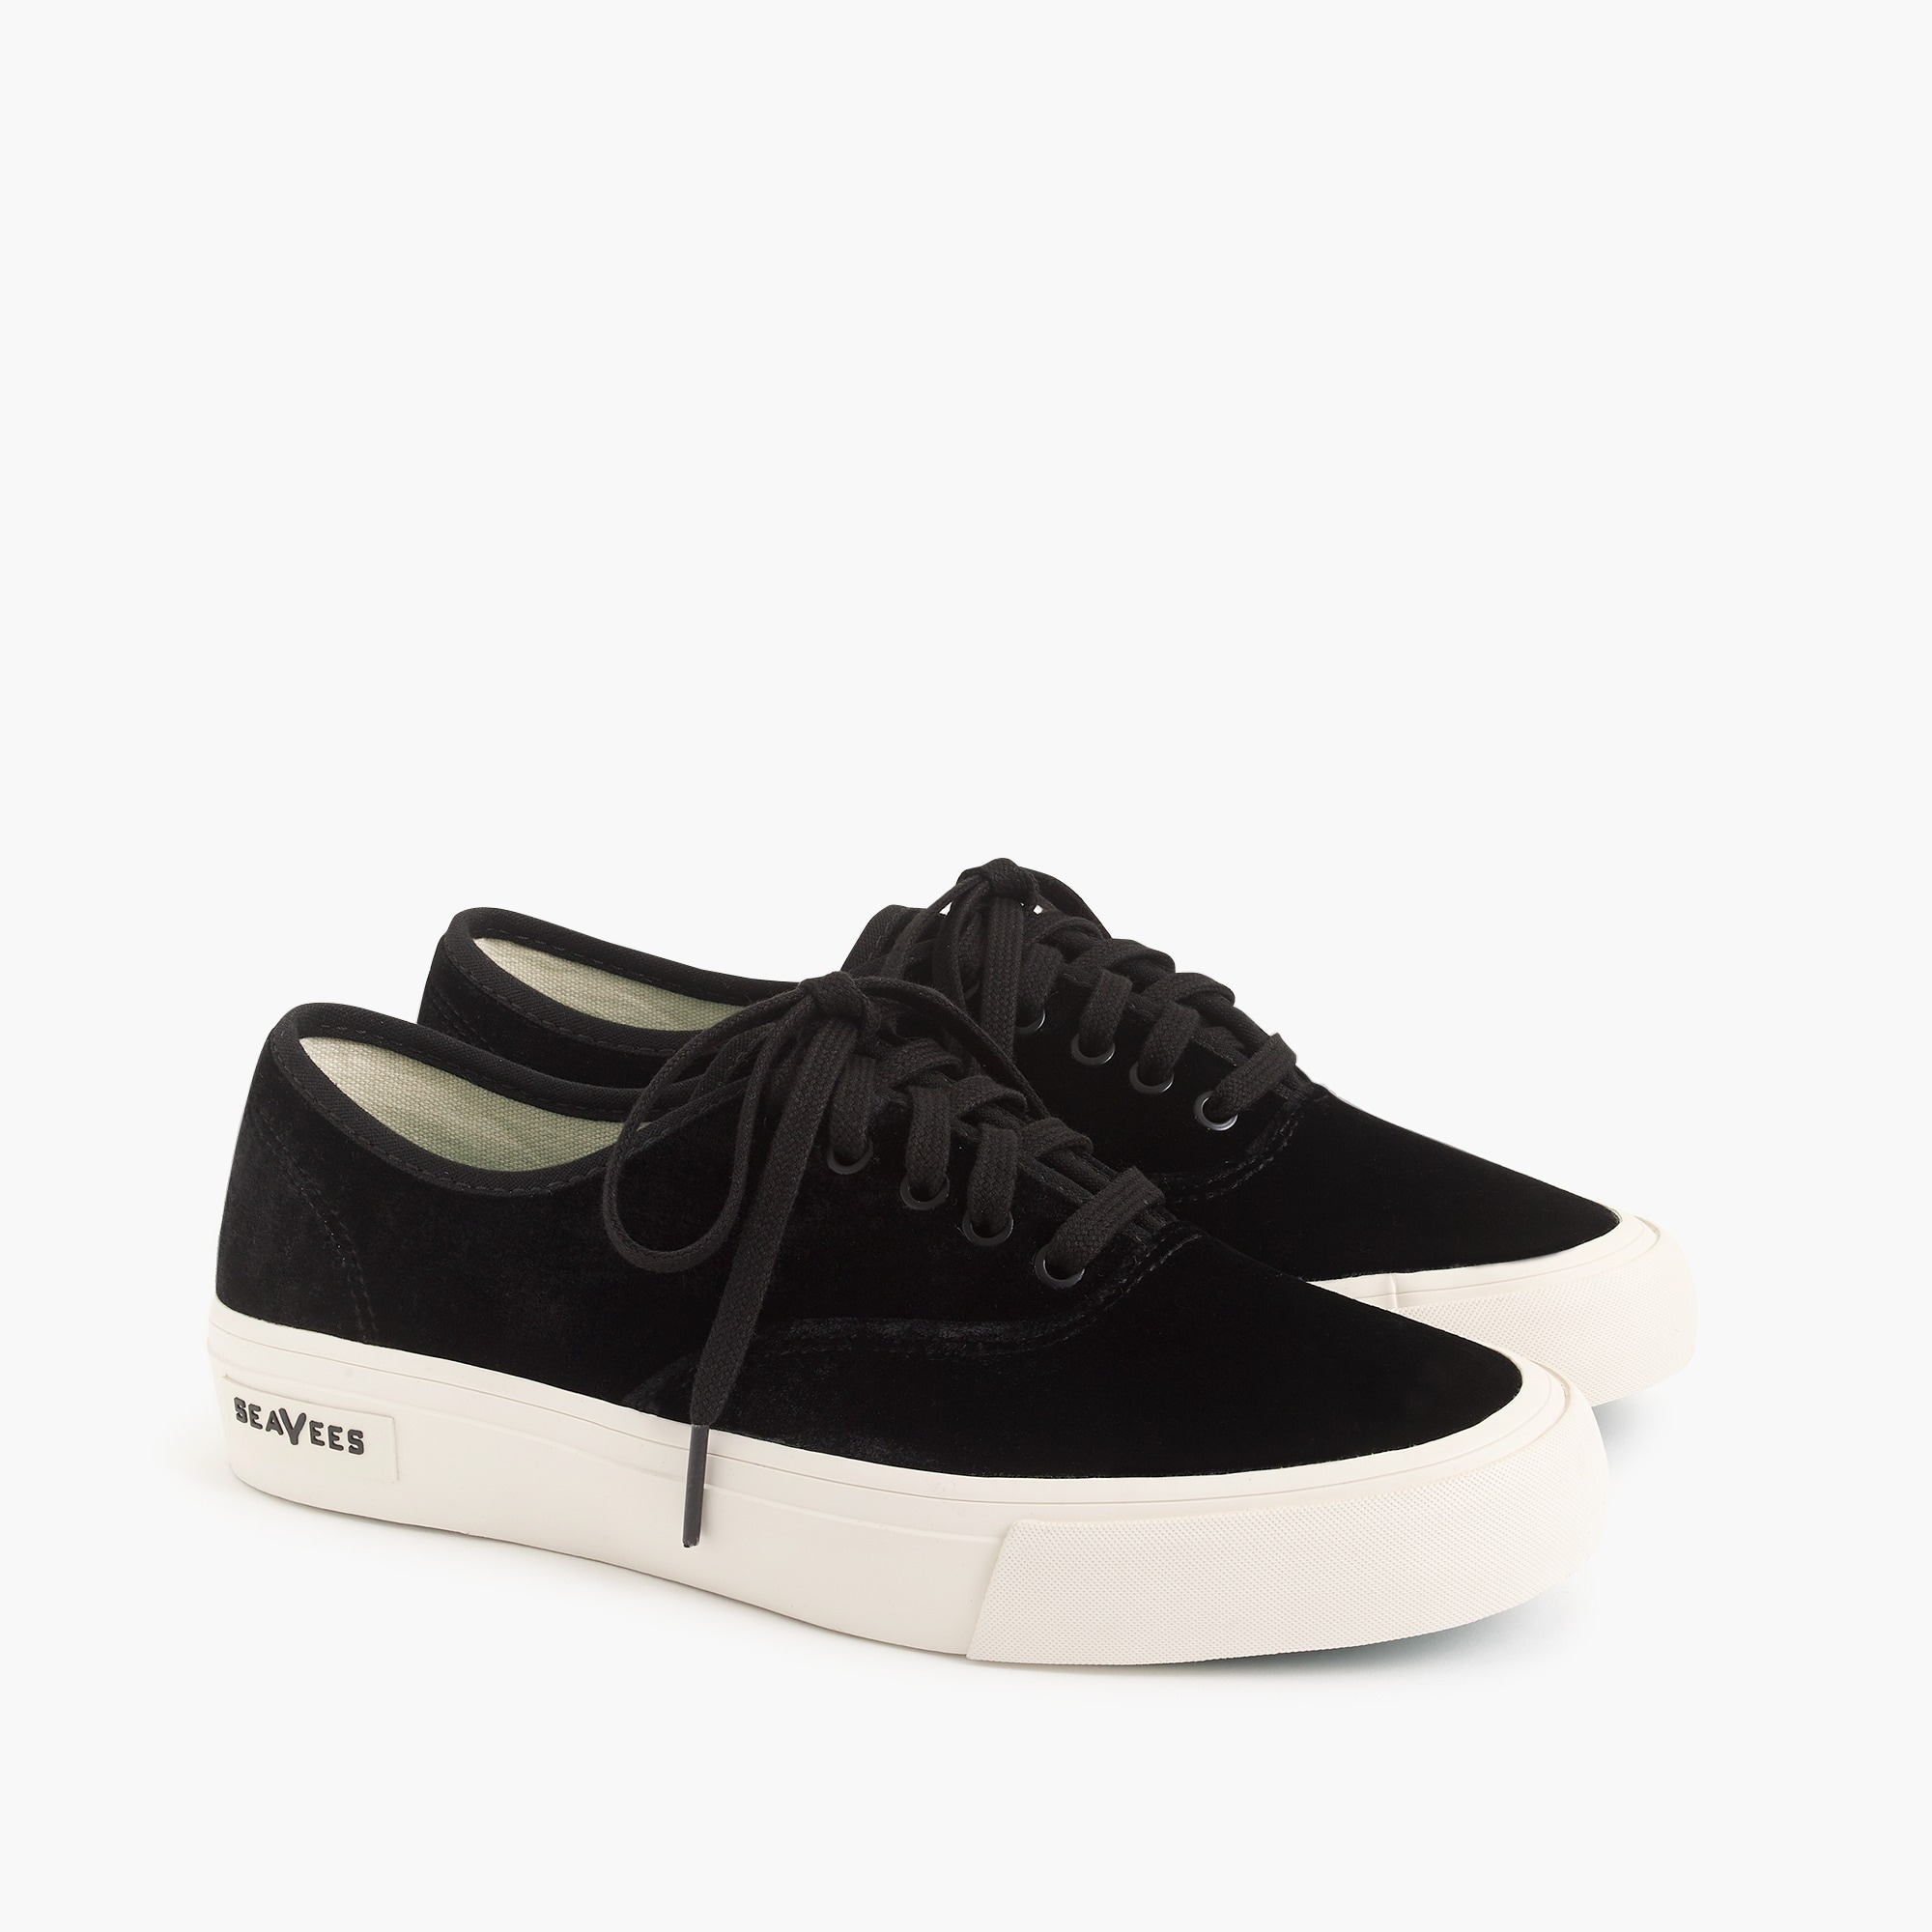 womens SeaVees® for J.Crew legend sneakers in velvet